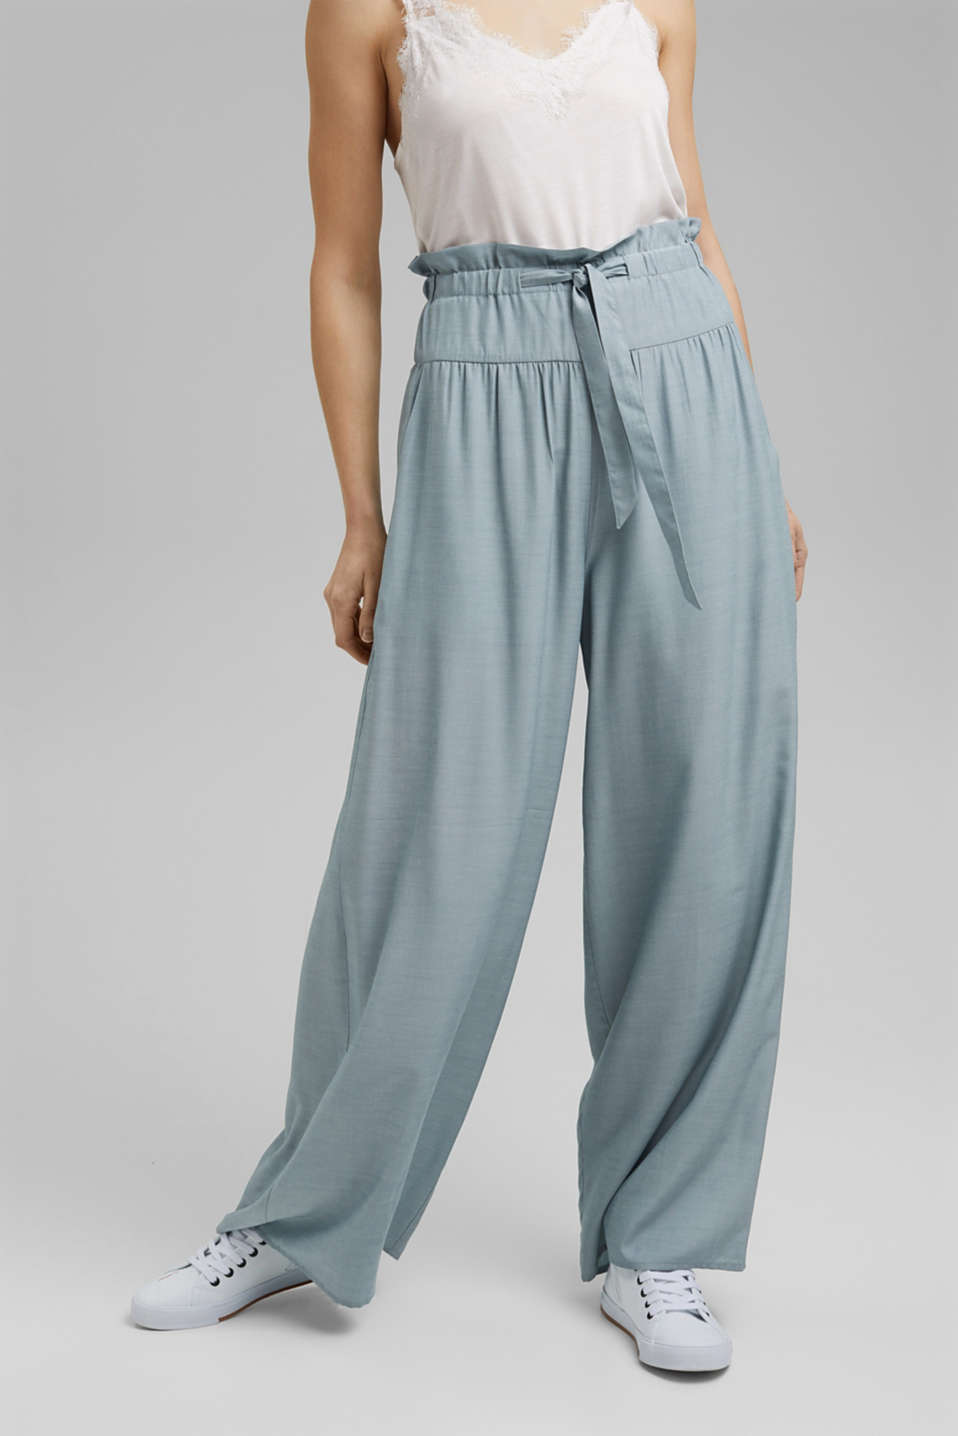 Esprit - Palazzo trousers containing LENZING™ ECOVERO™